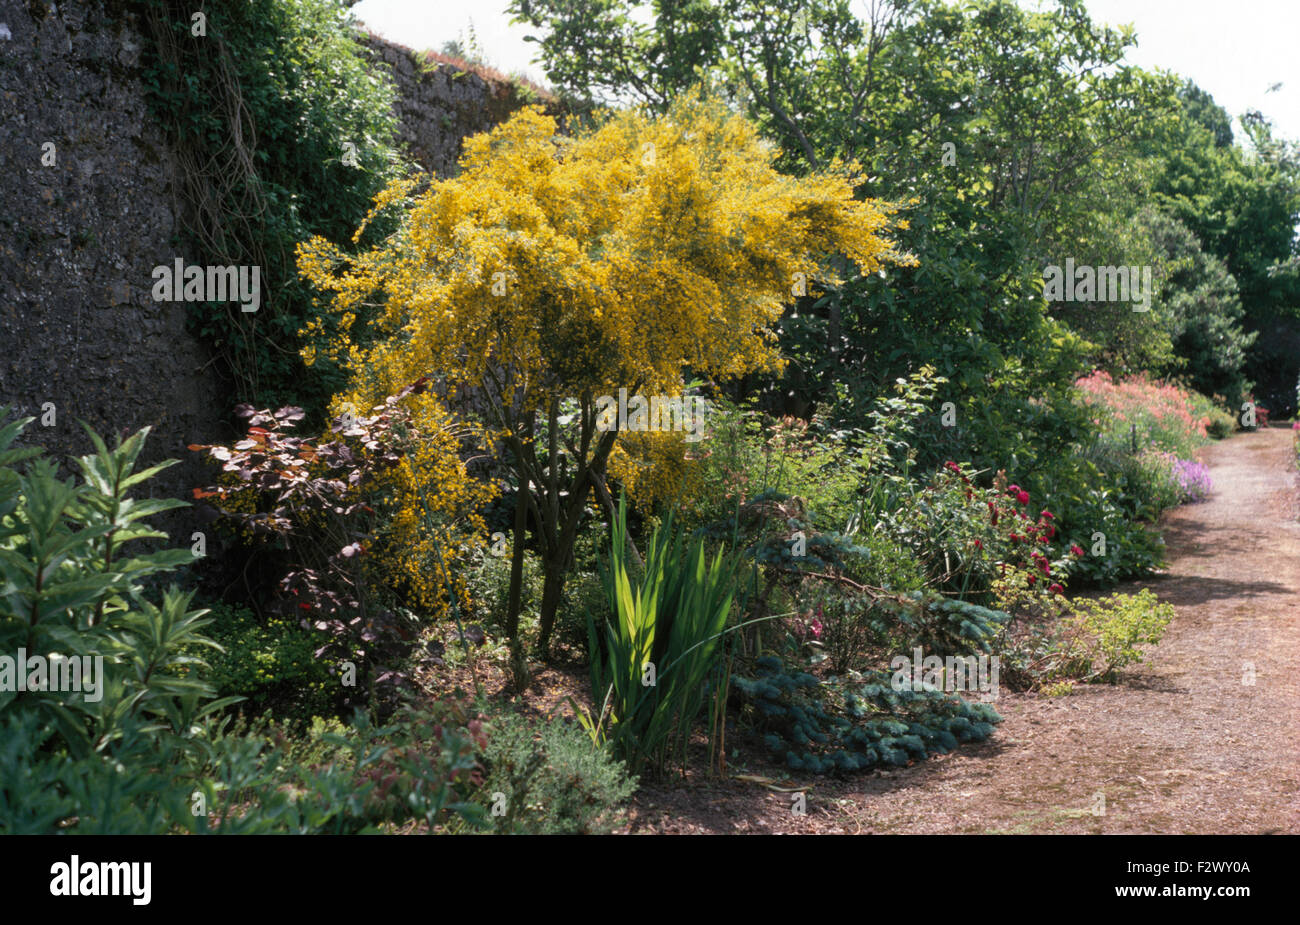 Yellow Flowering Acacia Growing In Border In Large Walled Garden